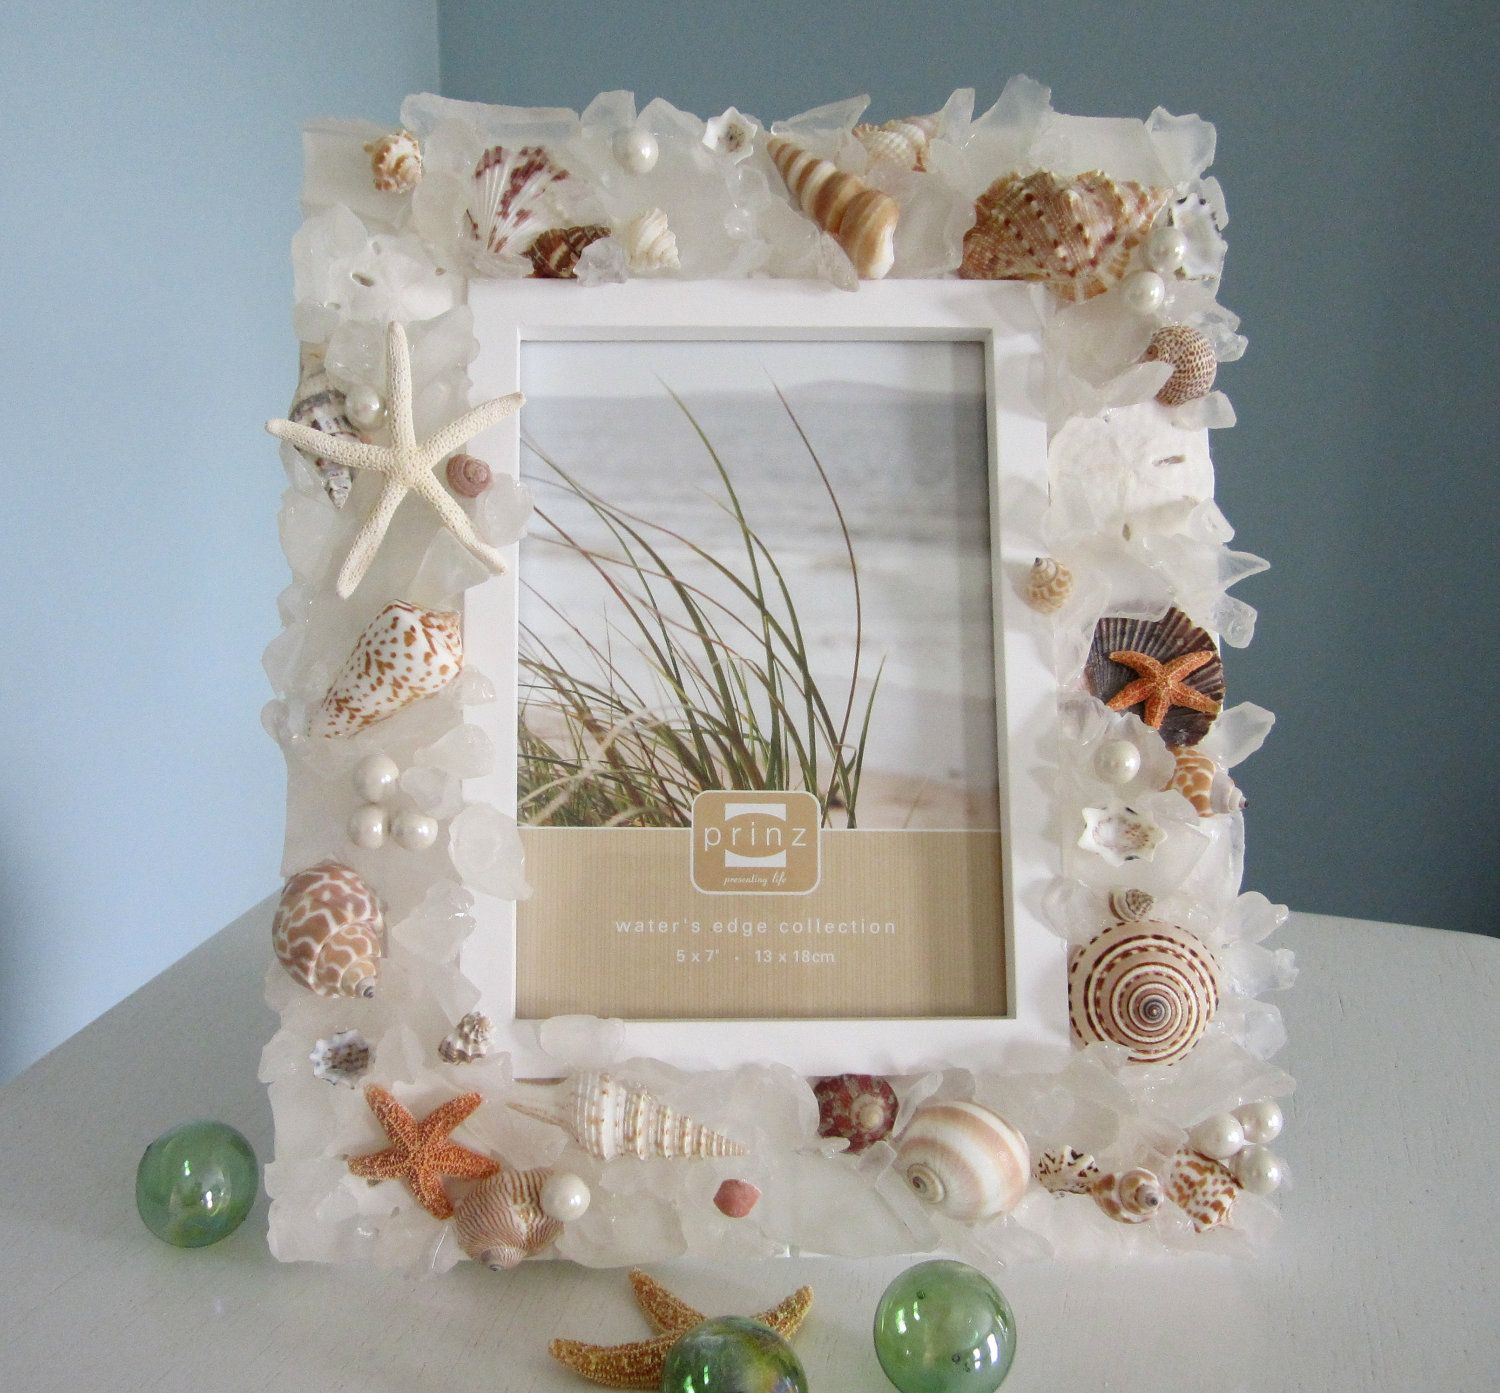 17 best images about picture frames on pinterest starfish red white blue and vintage inspired